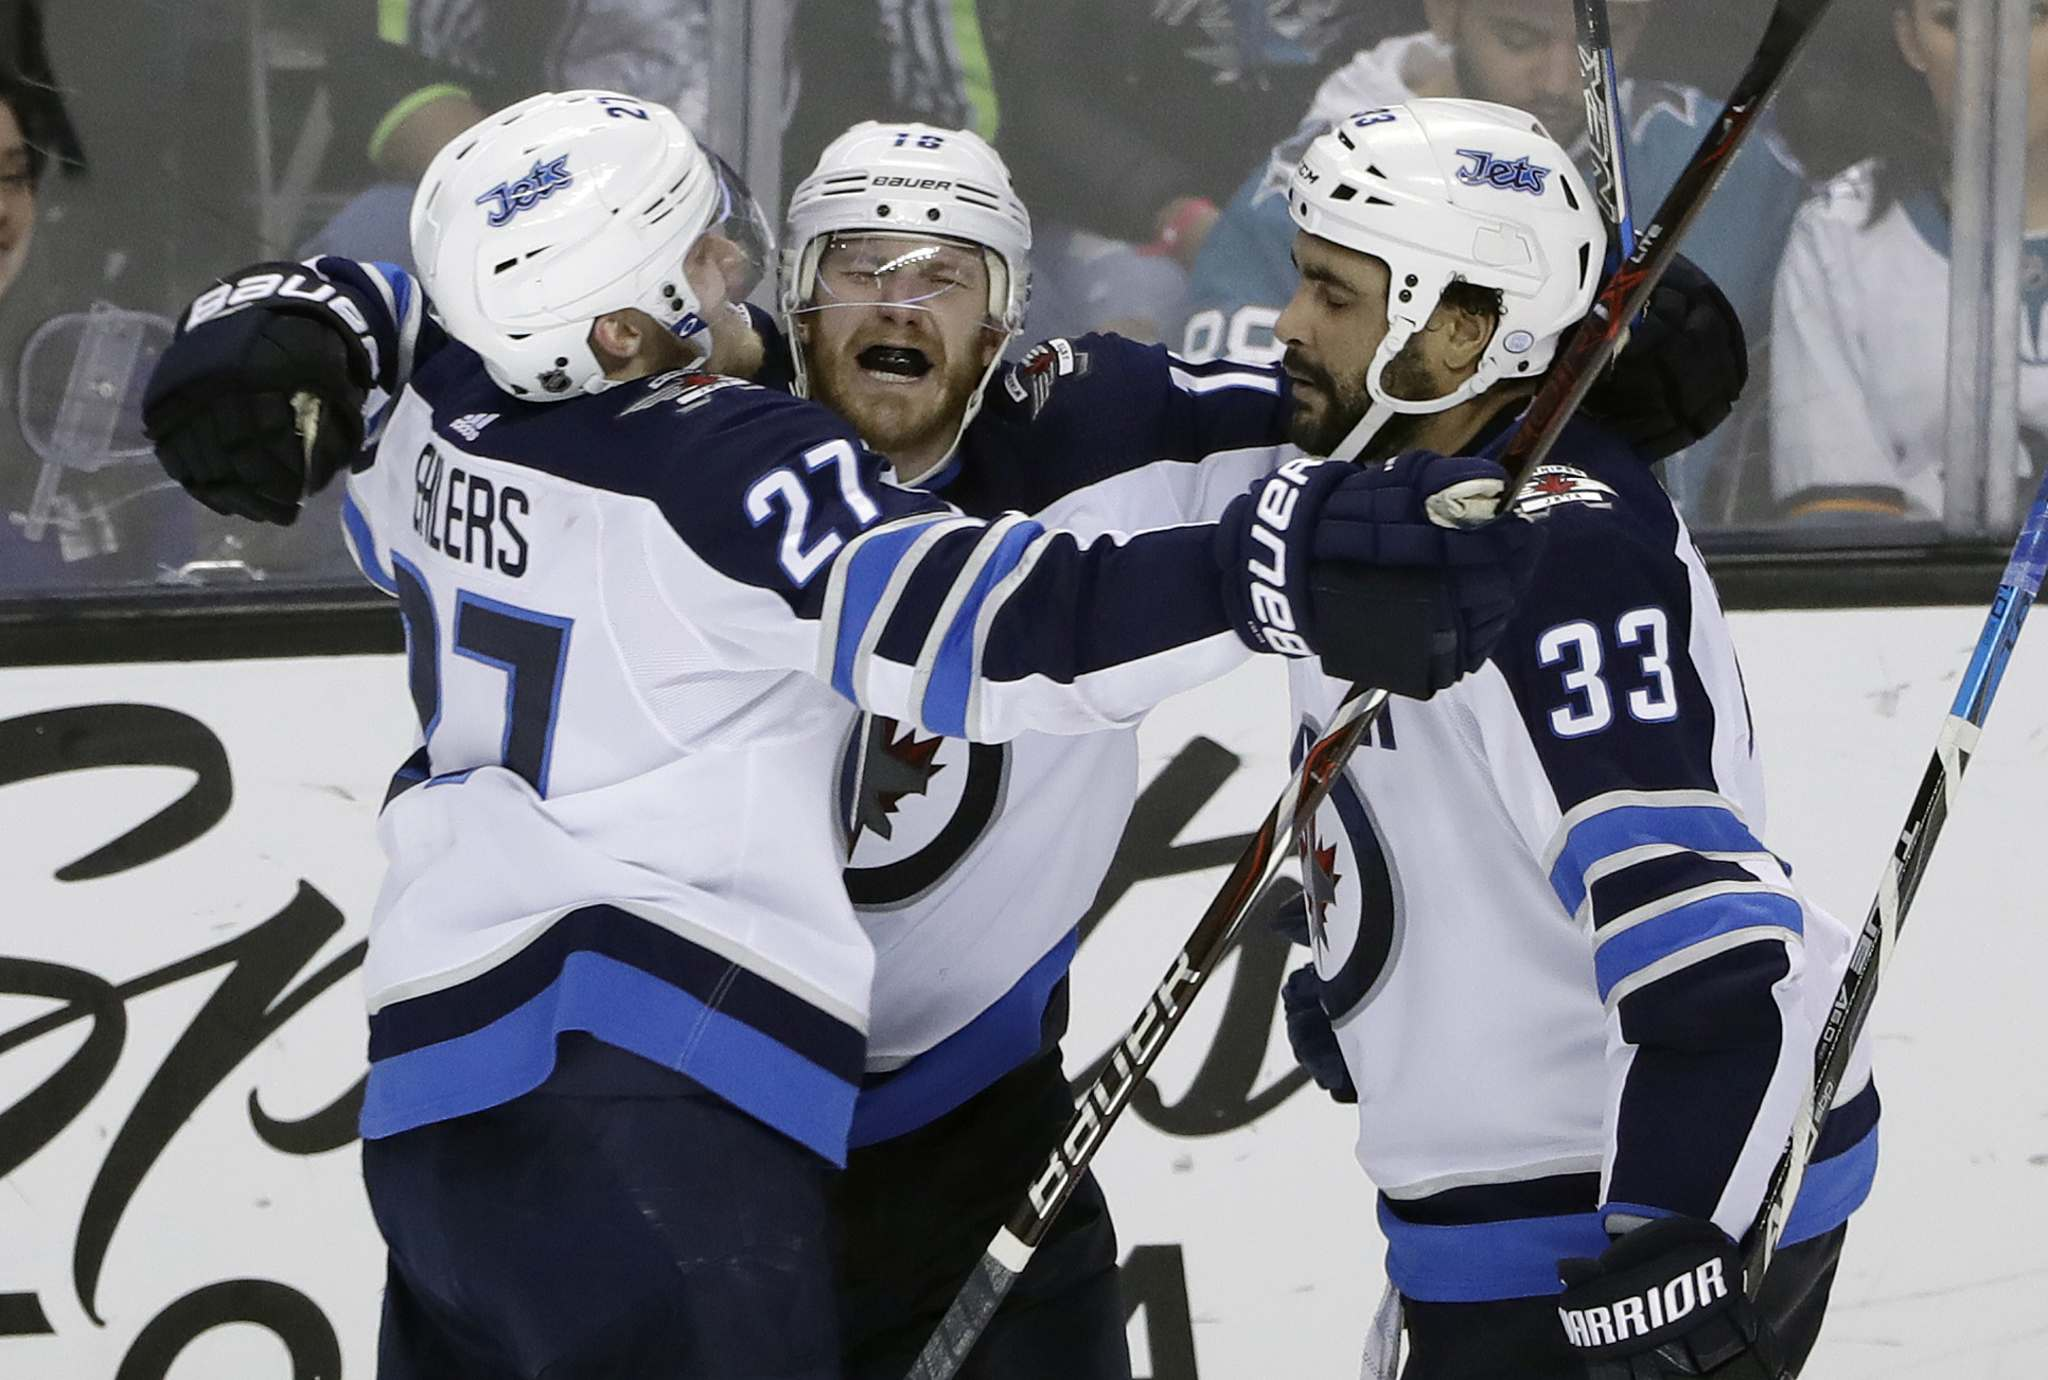 (AP Photo/Marcio Jose Sanchez)</p><p>Winnipeg Jets' Bryan Little, centre, celebrates his overtime goal with teammates Nik Ehlers and Dustin Byfuglien, in their game against the San Jose Sharks on Tuesday, in San Jose, Calif. Winnipeg won 5-4. </p>